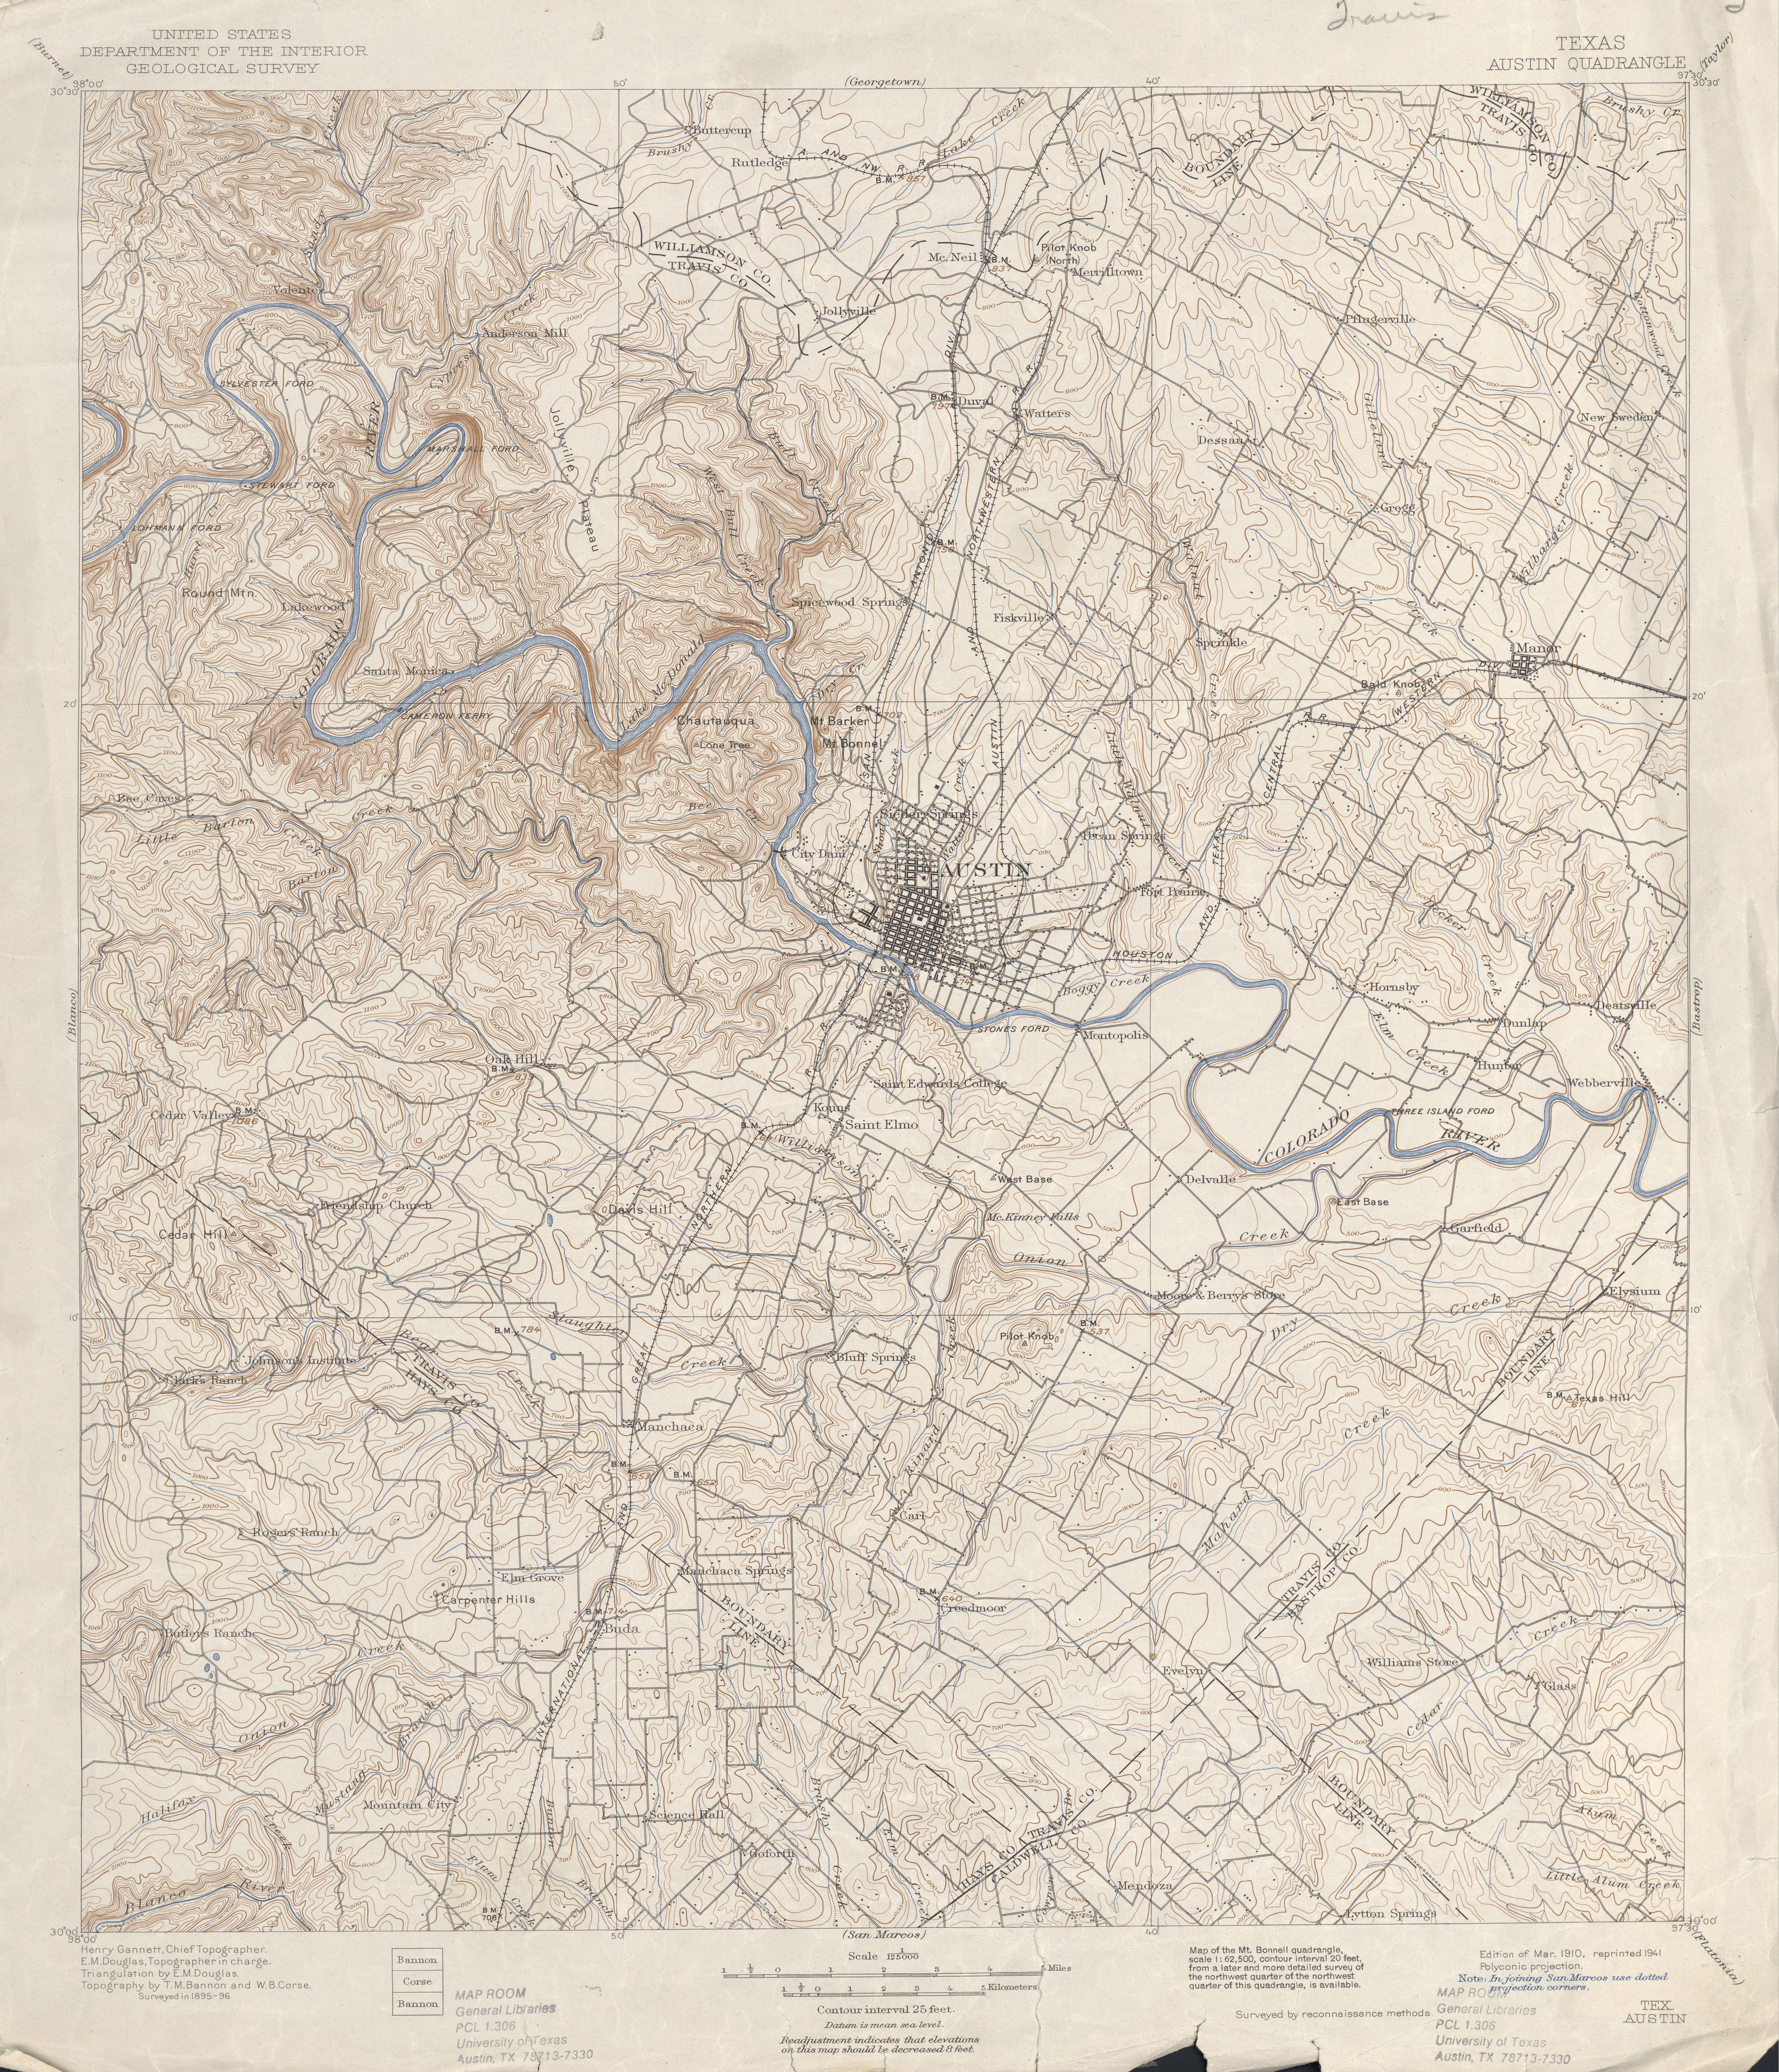 Austin Tx Map Of Texas.Austin Texas Topographic Maps Perry Castaneda Map Collection Ut